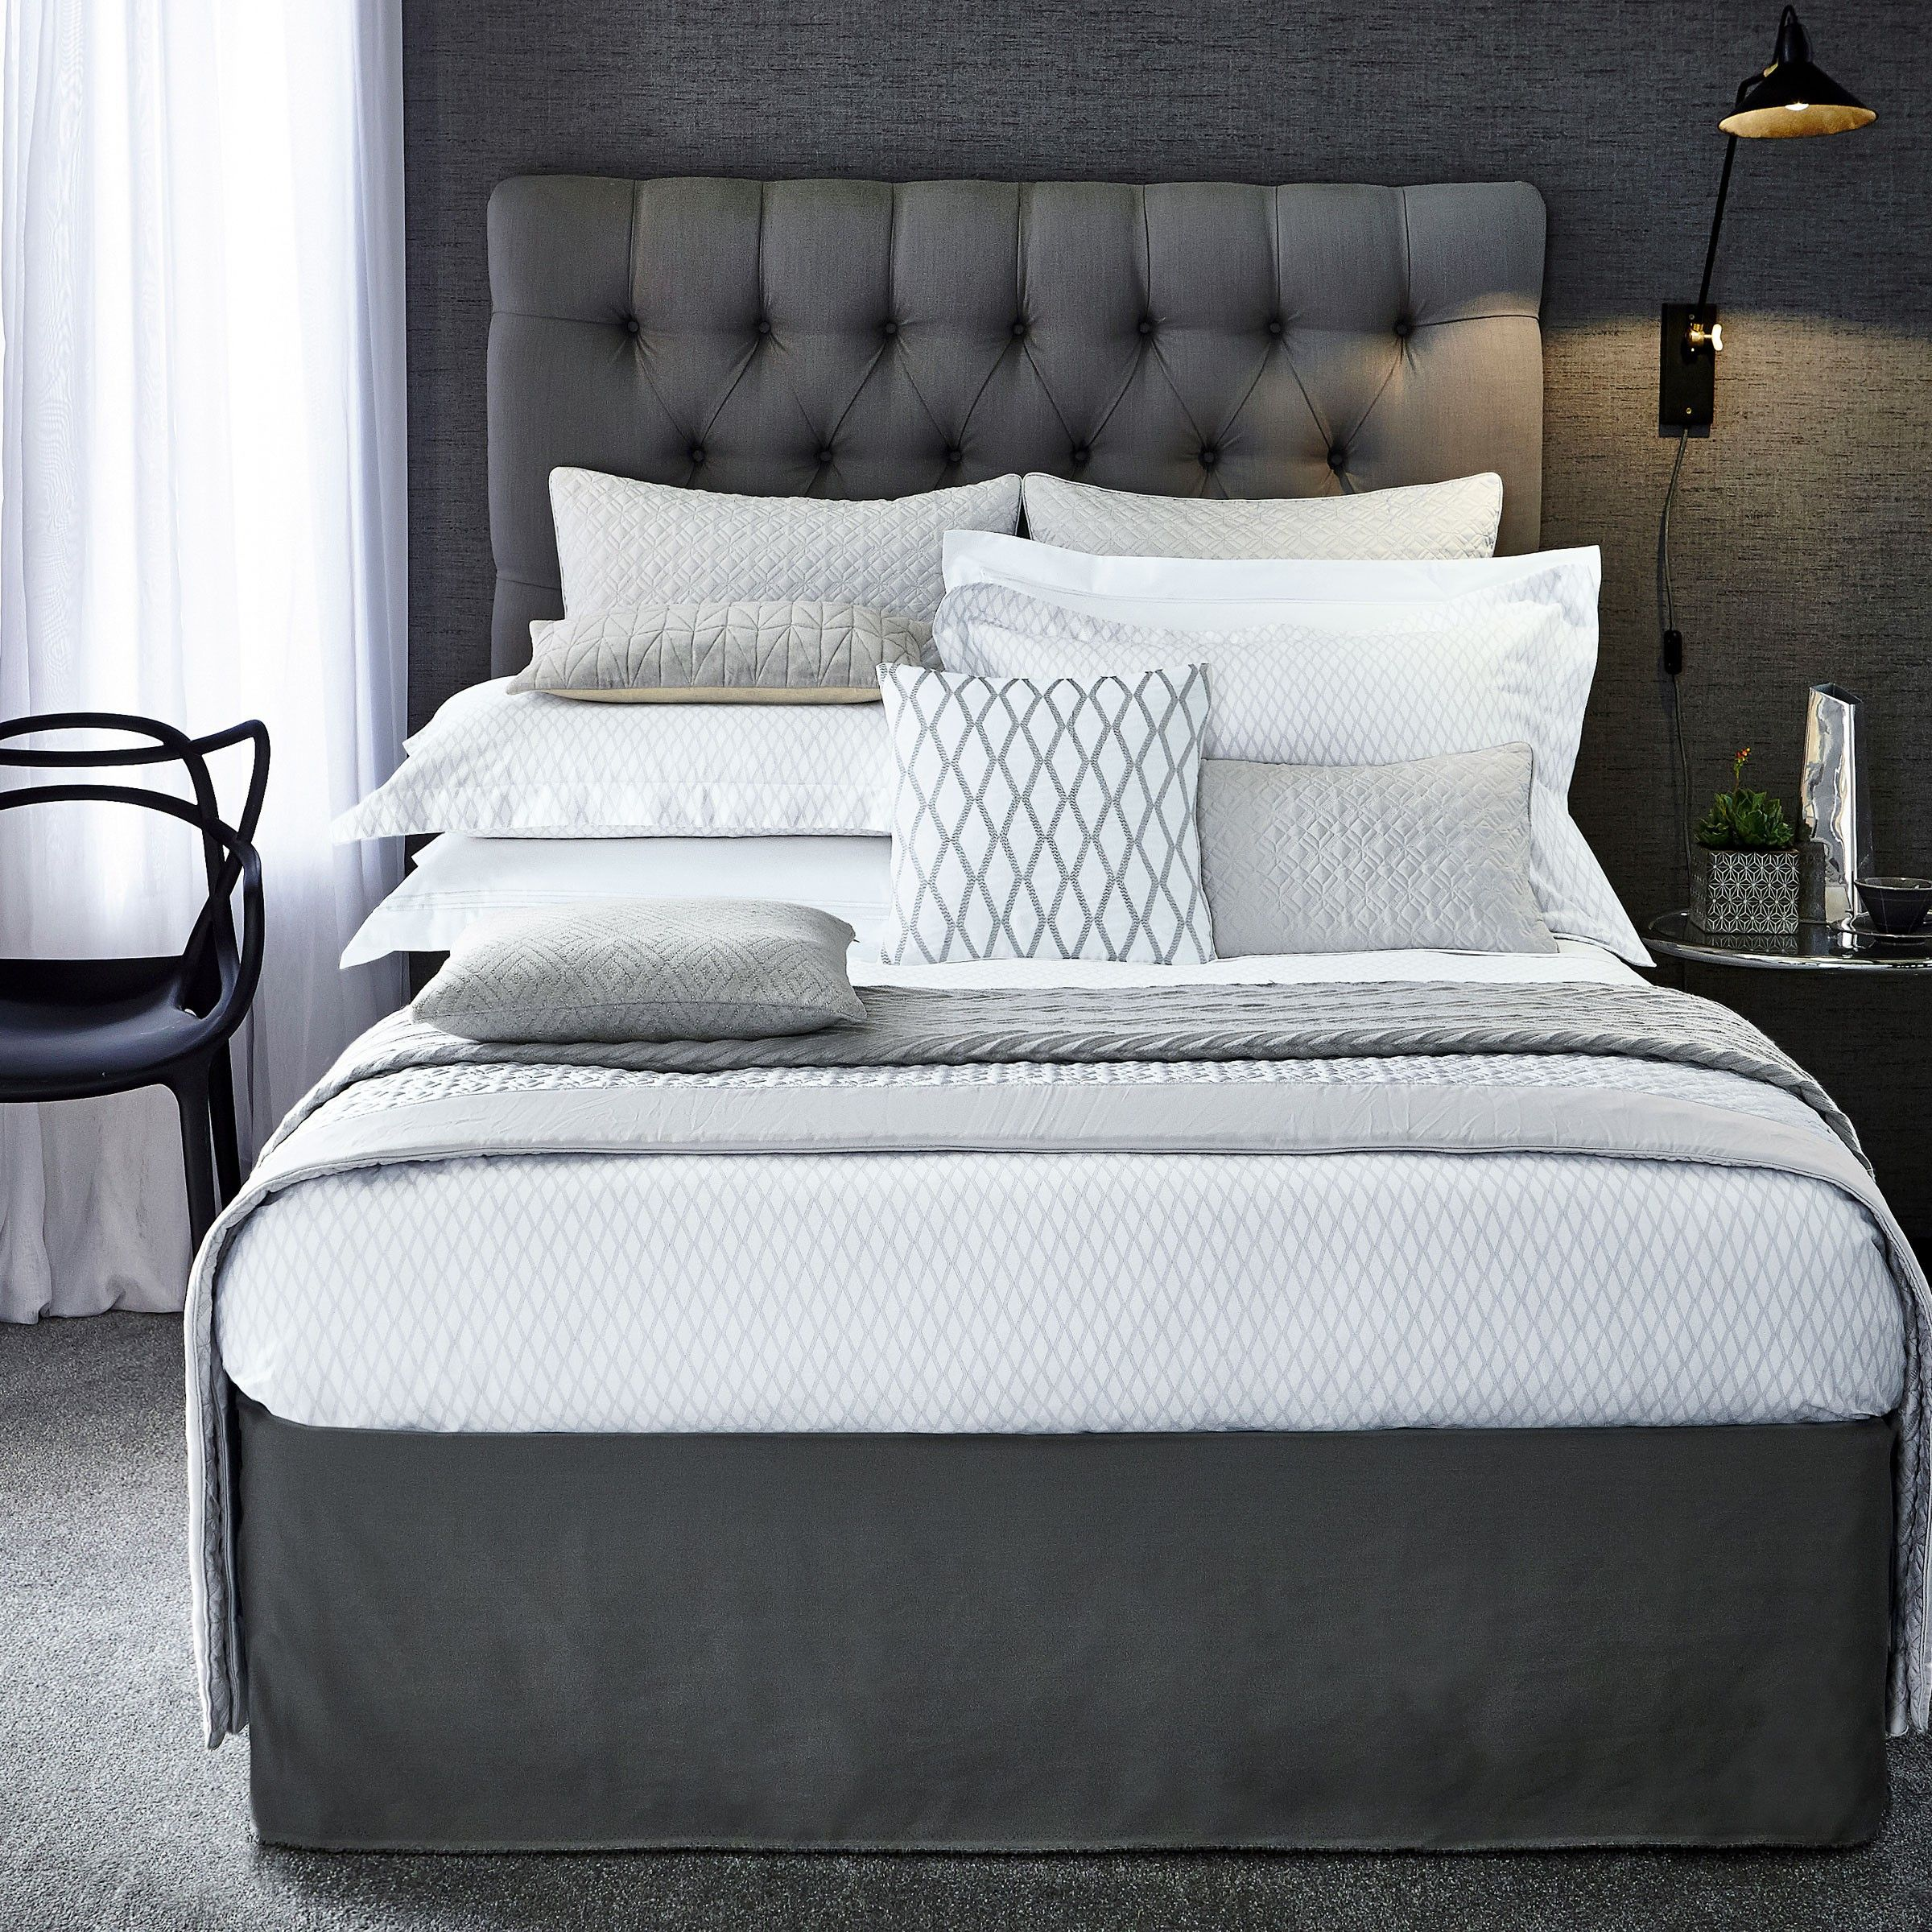 bath linens luxury customers and catalog classic much a bedding now original spring comforter our chic inspired is summer design by hotel timeless favourite loved collection